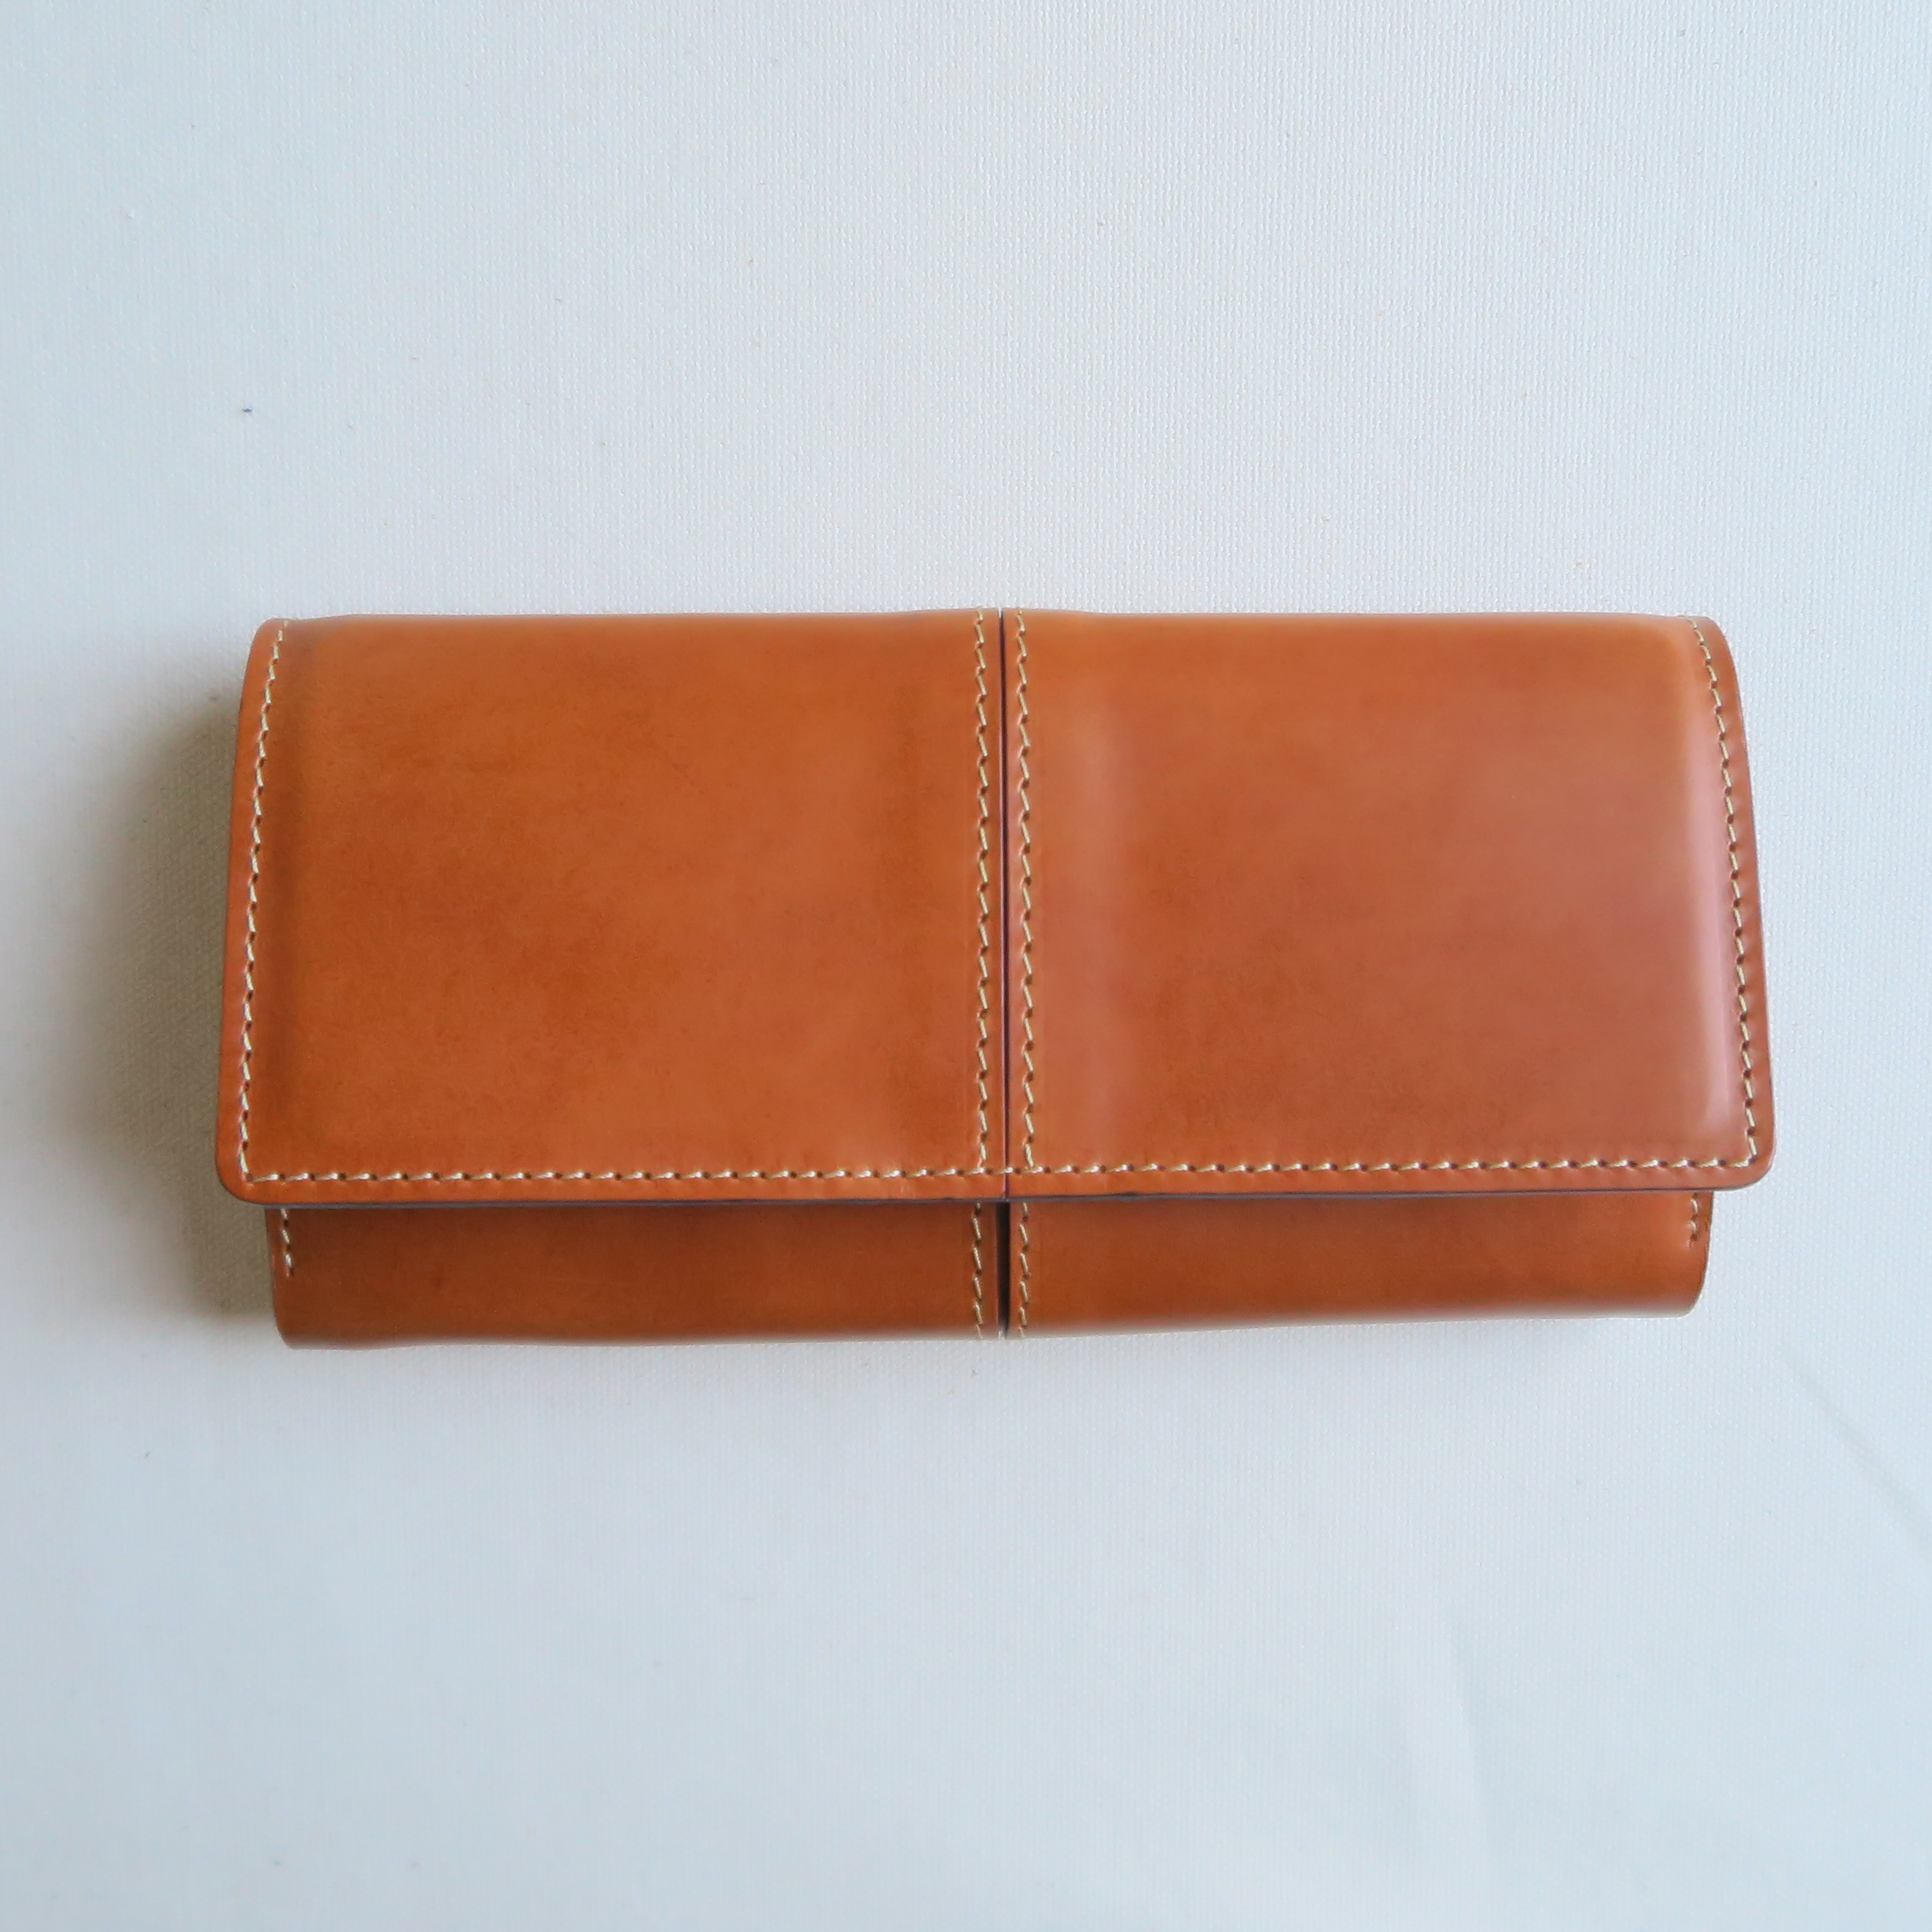 Garçon wallet BROWN